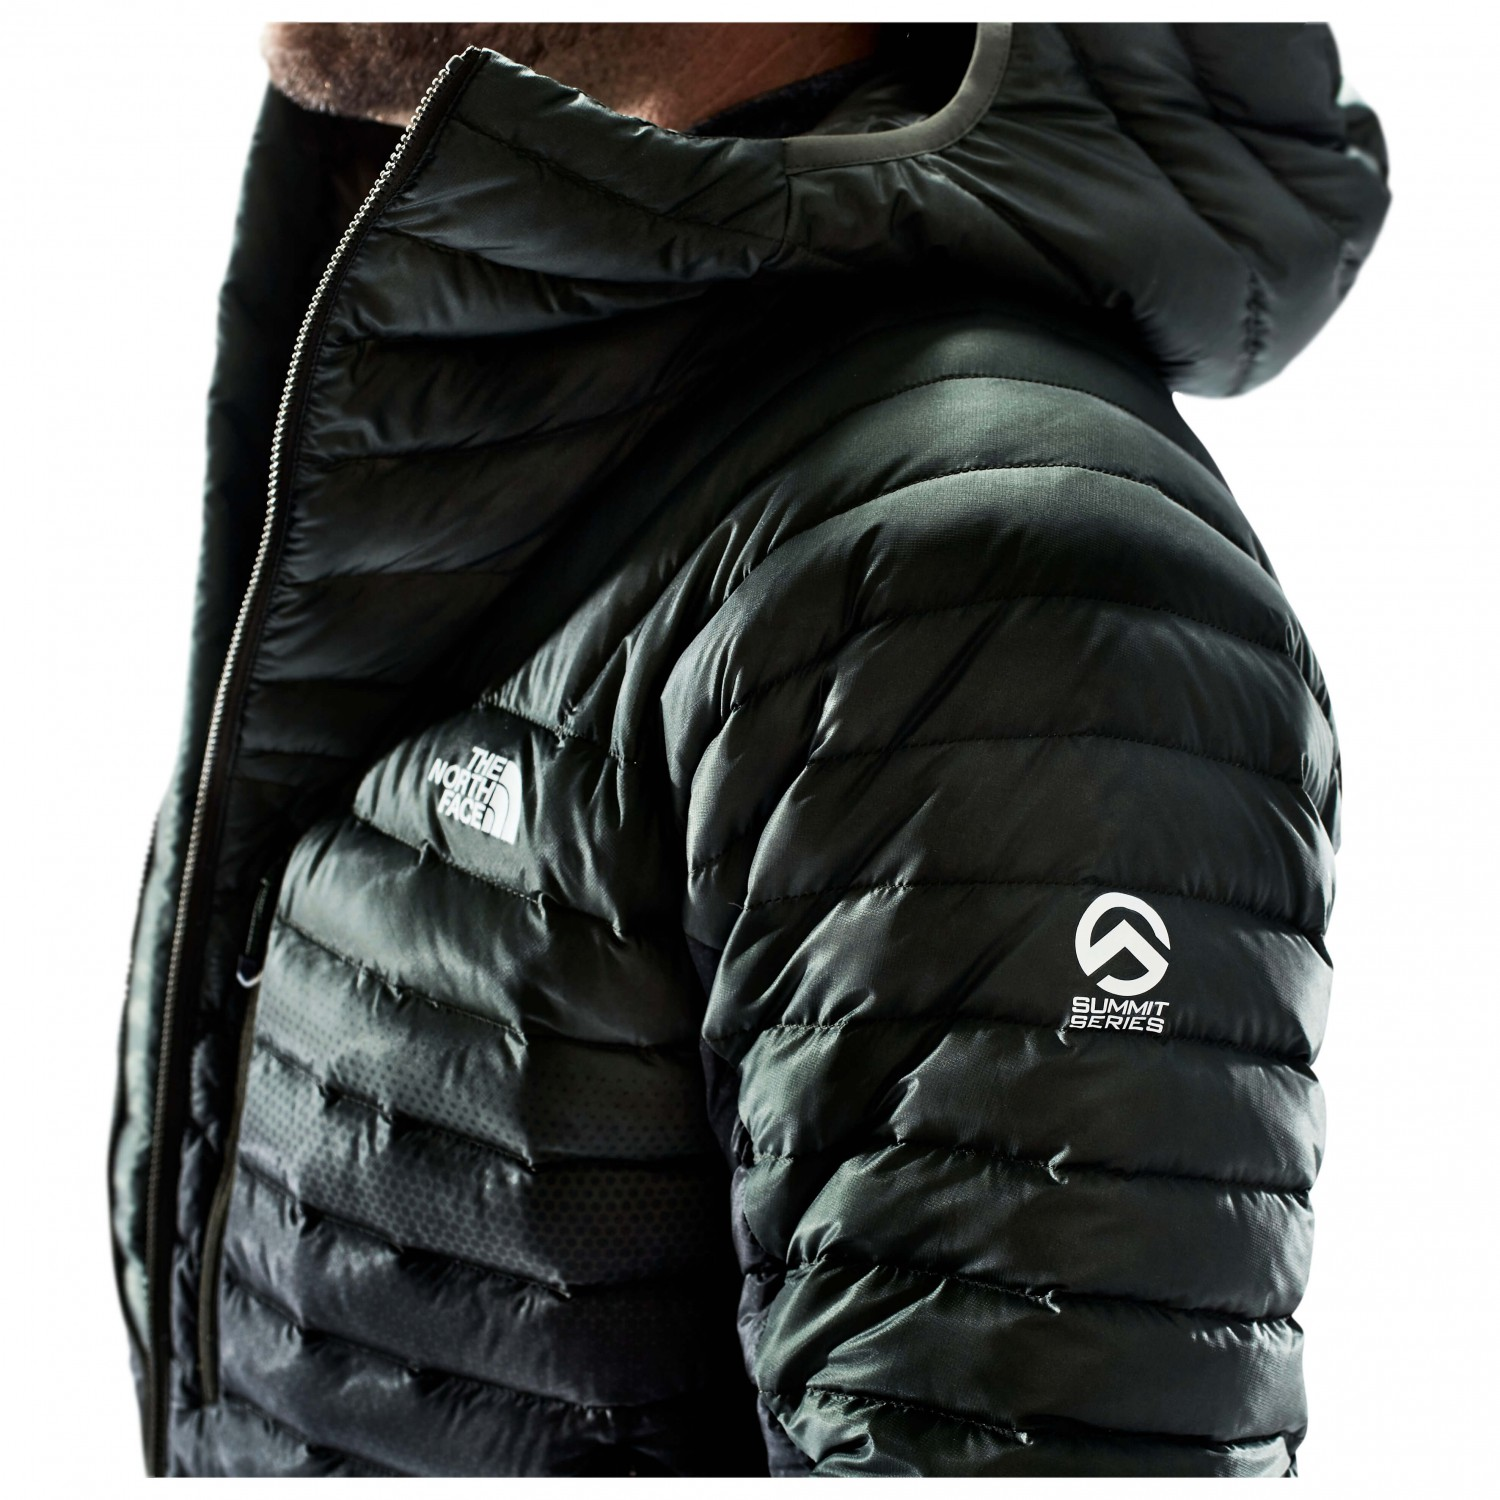 54fabd66 the north face dunjakke herre. The North Face Summit L3 ...